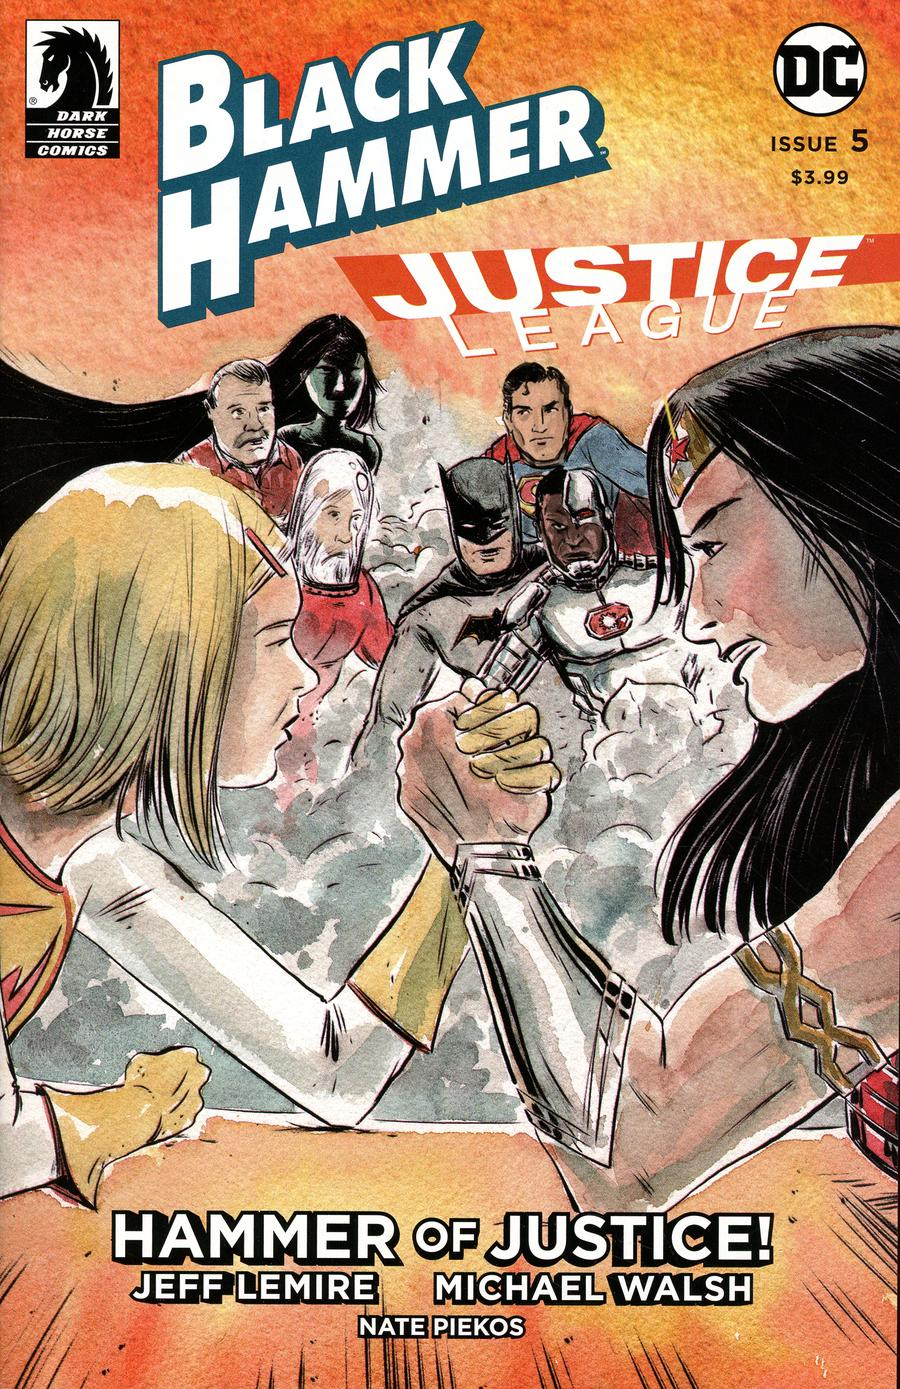 Black Hammer Justice League Hammer Of Justice #5 Cover B Variant Matt Kindt Cover